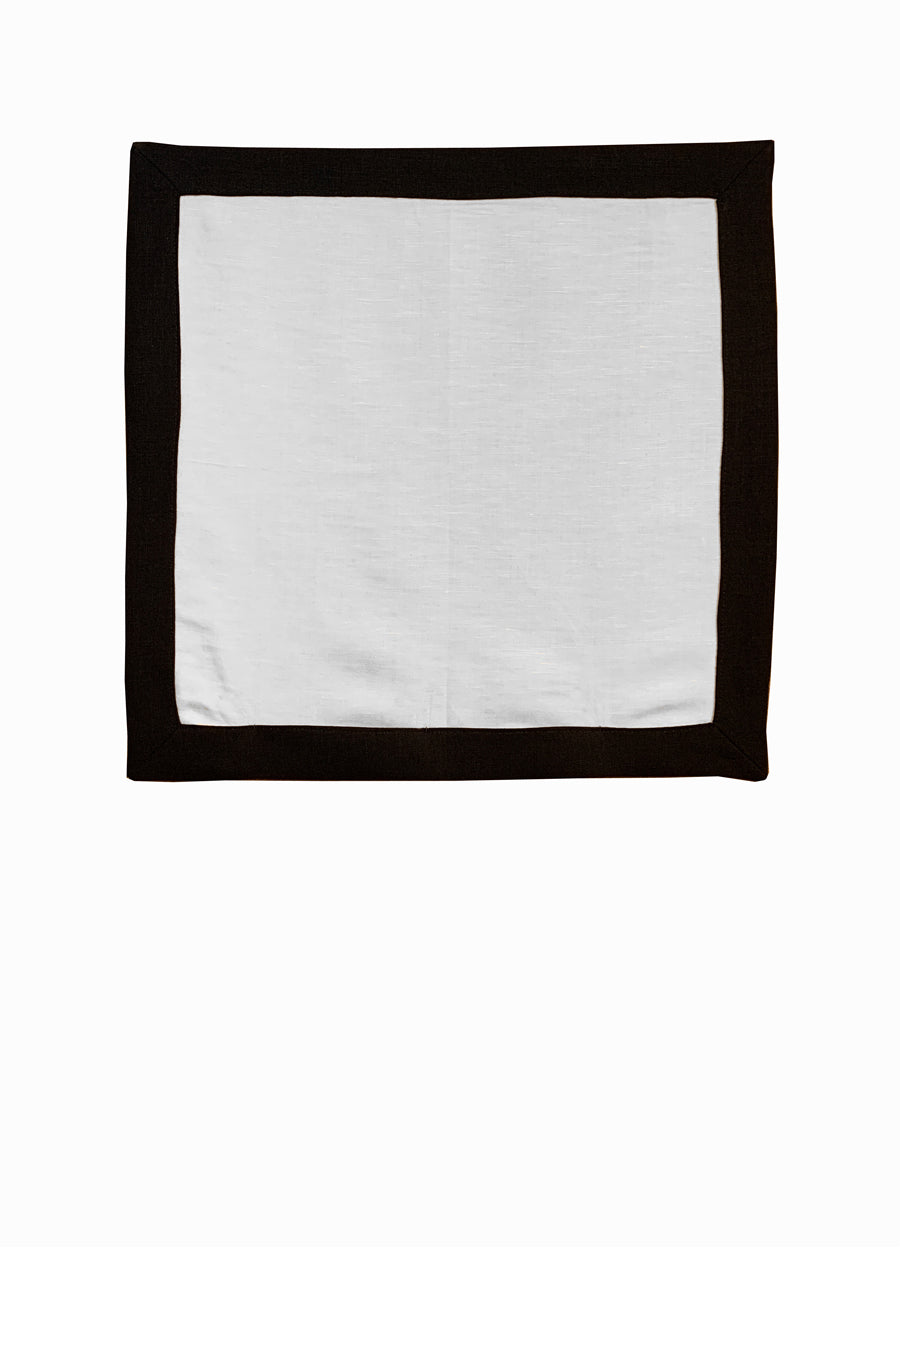 Set of 4 Contrast Border Dinner Napkin Black/White